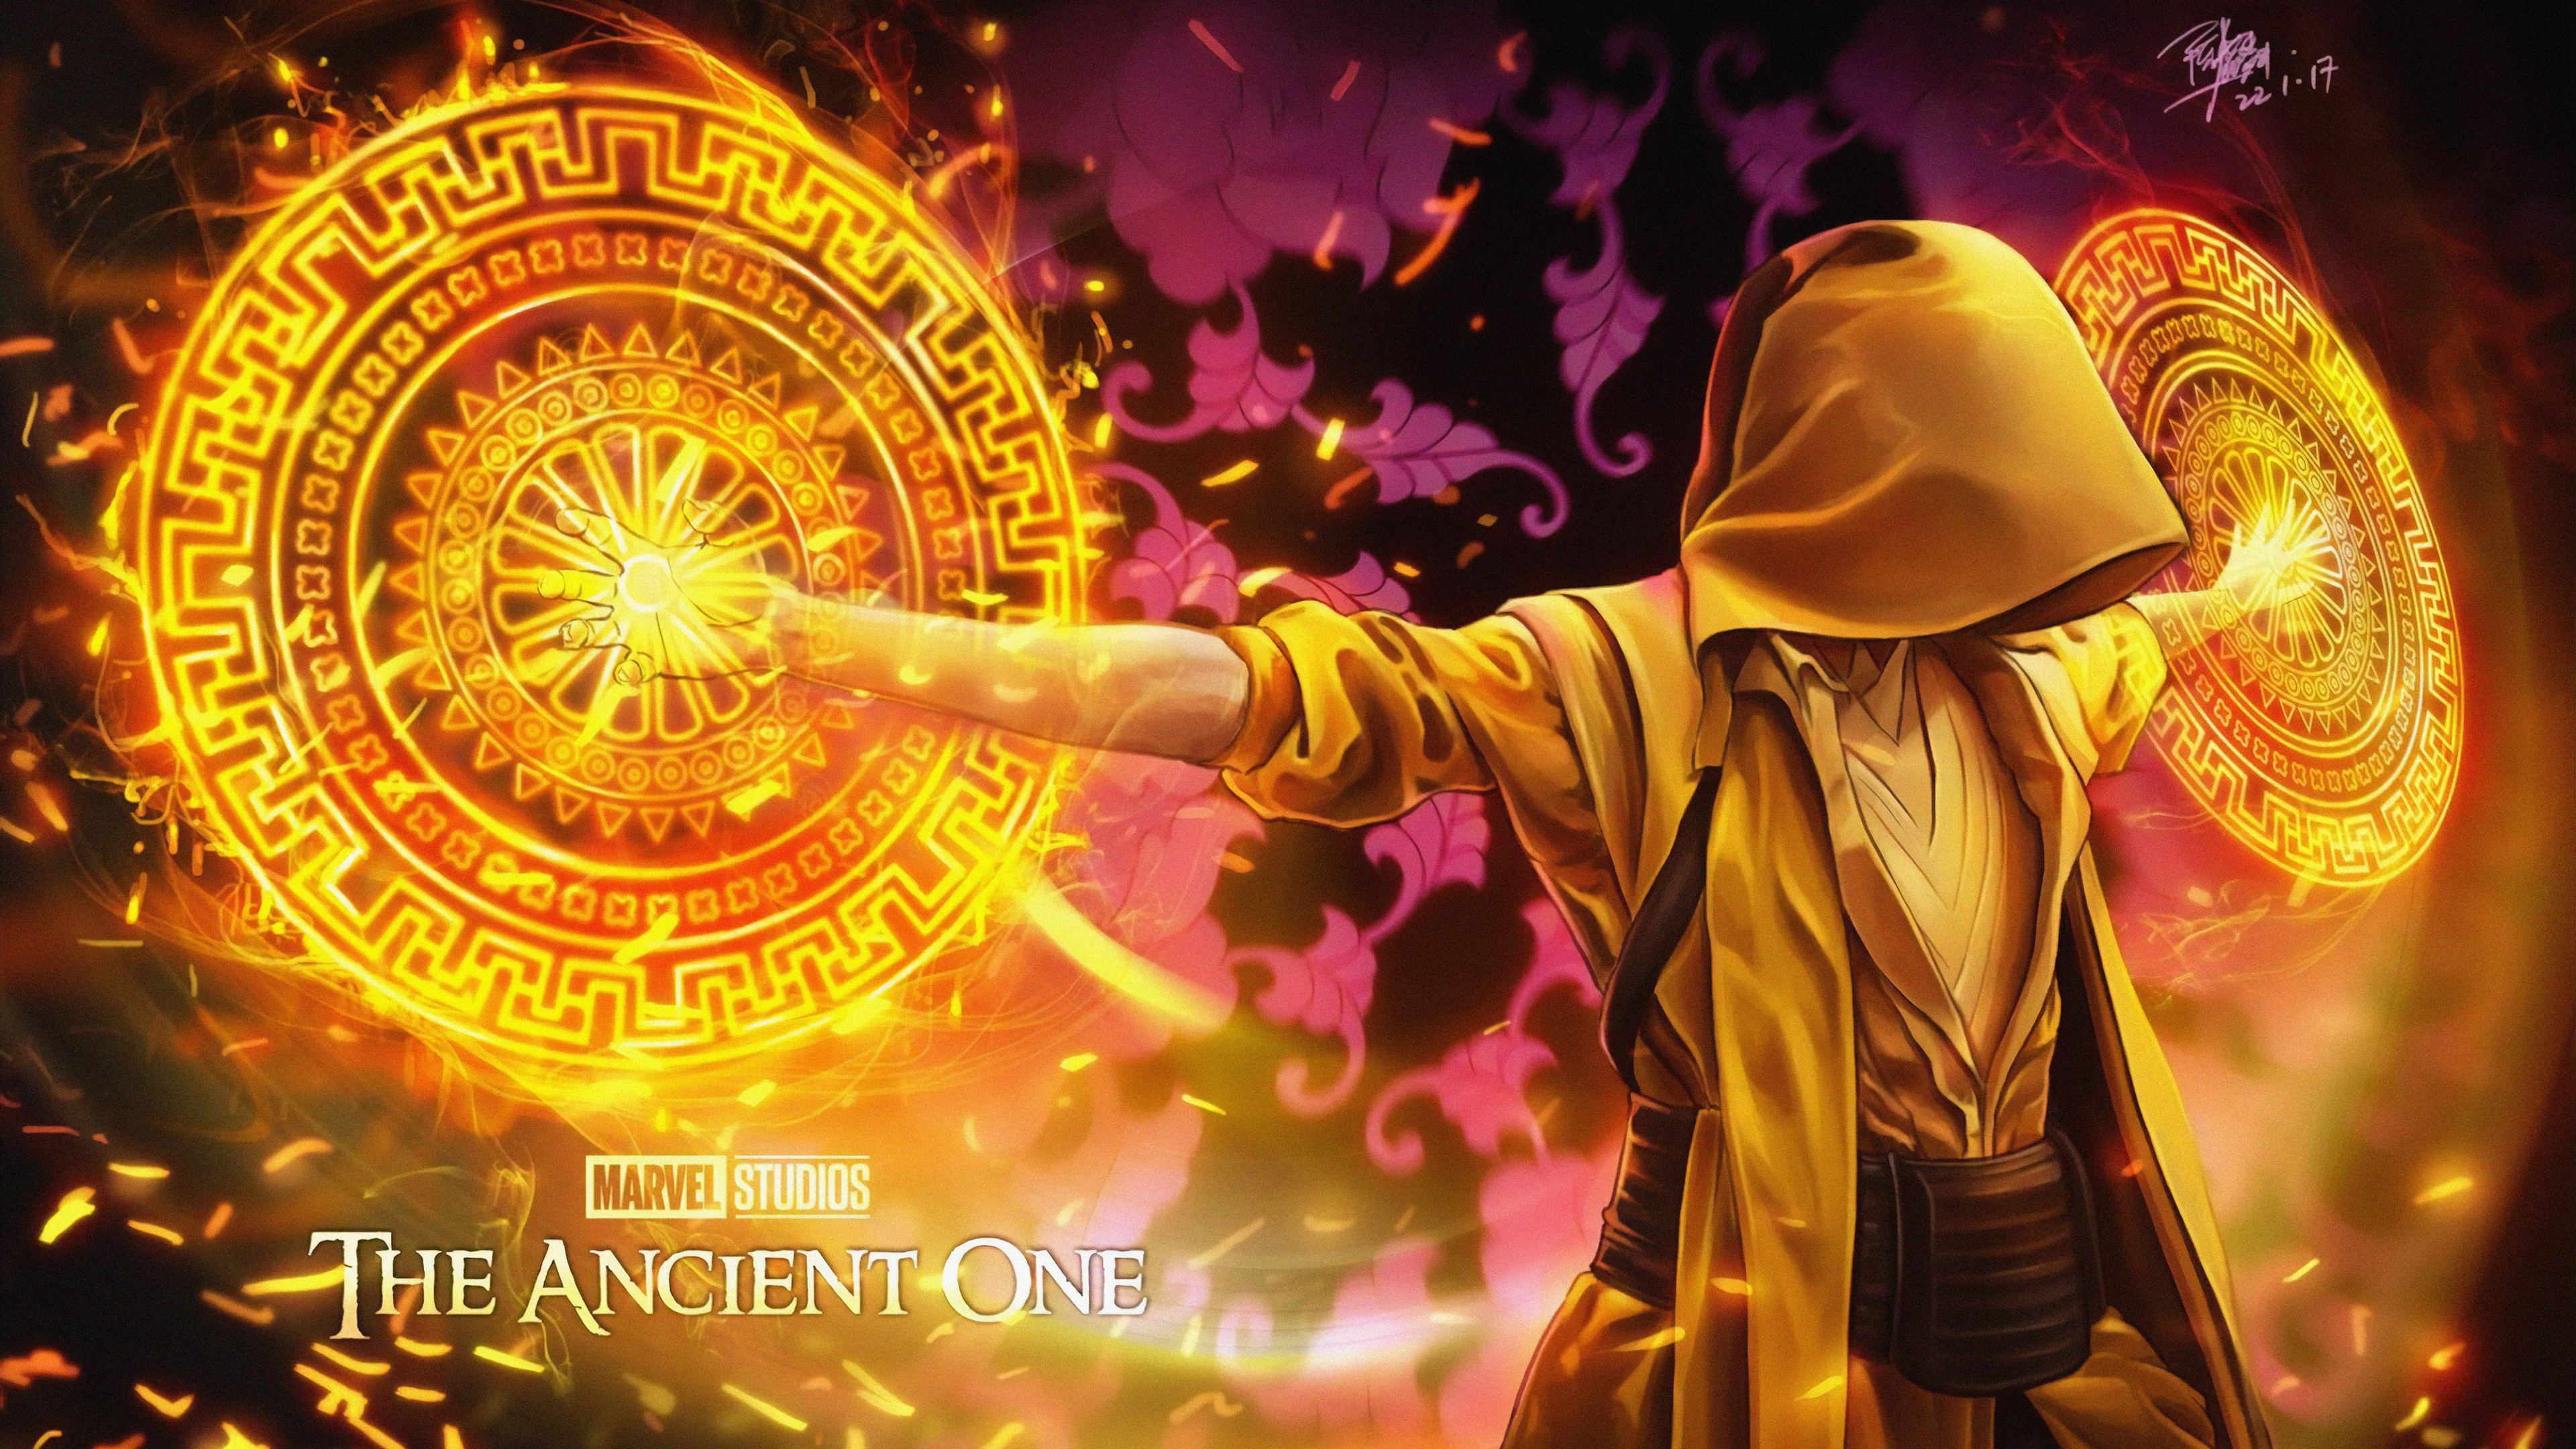 the ancient one 1563219820 - The Ancient One - superheroes wallpapers, hd-wallpapers, artwork wallpapers, 4k-wallpapers